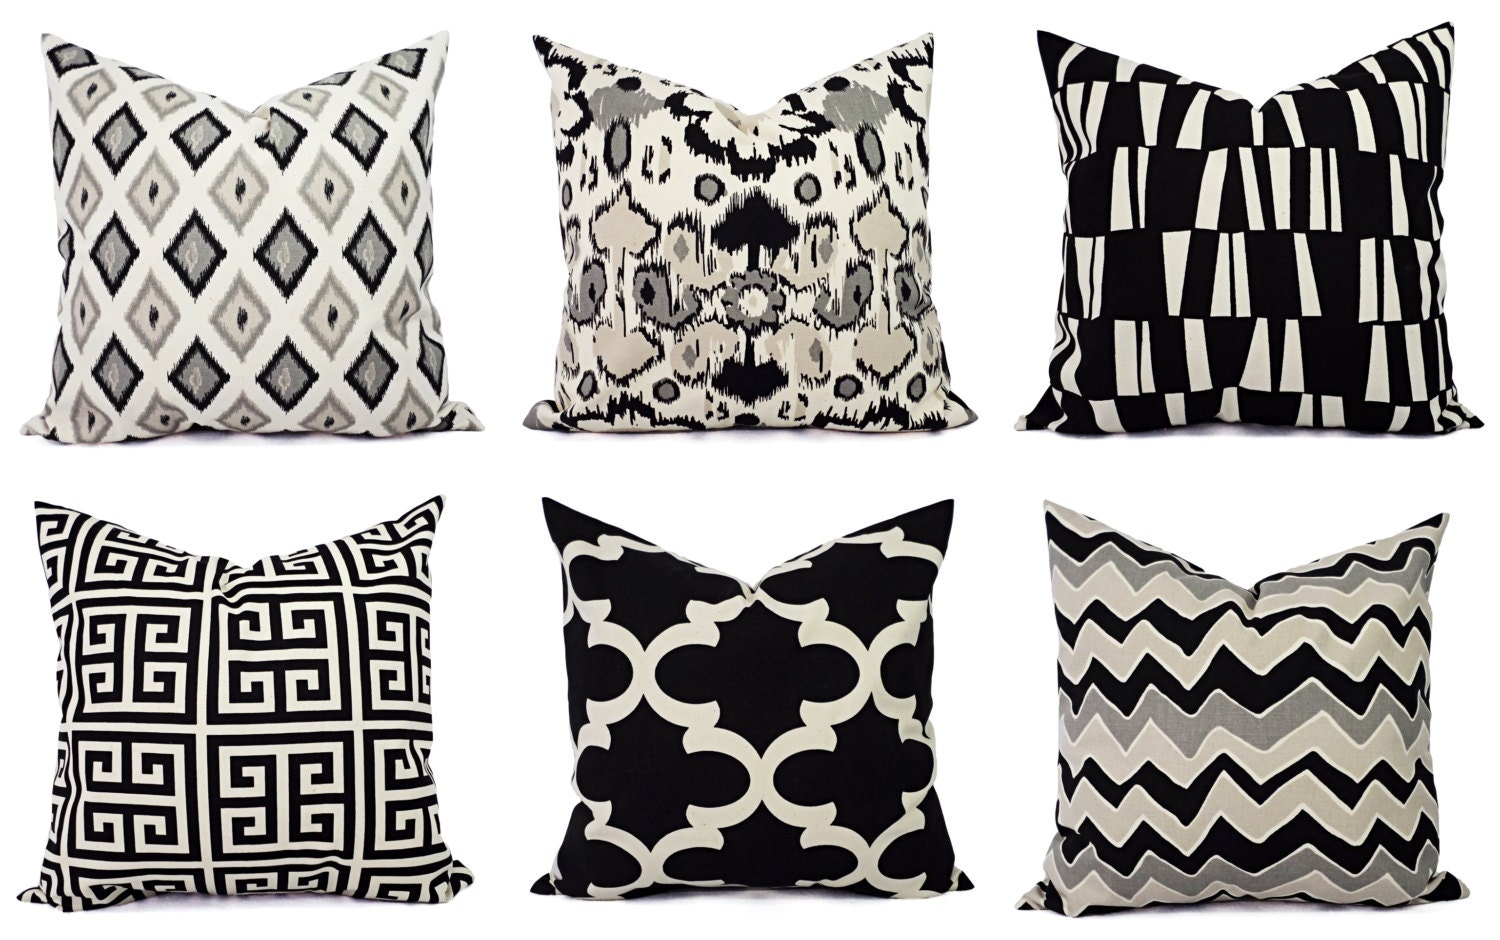 Black And Beige Decorative Pillows : Black Throw Pillow Cover Black and Beige Pillow Euro Sham